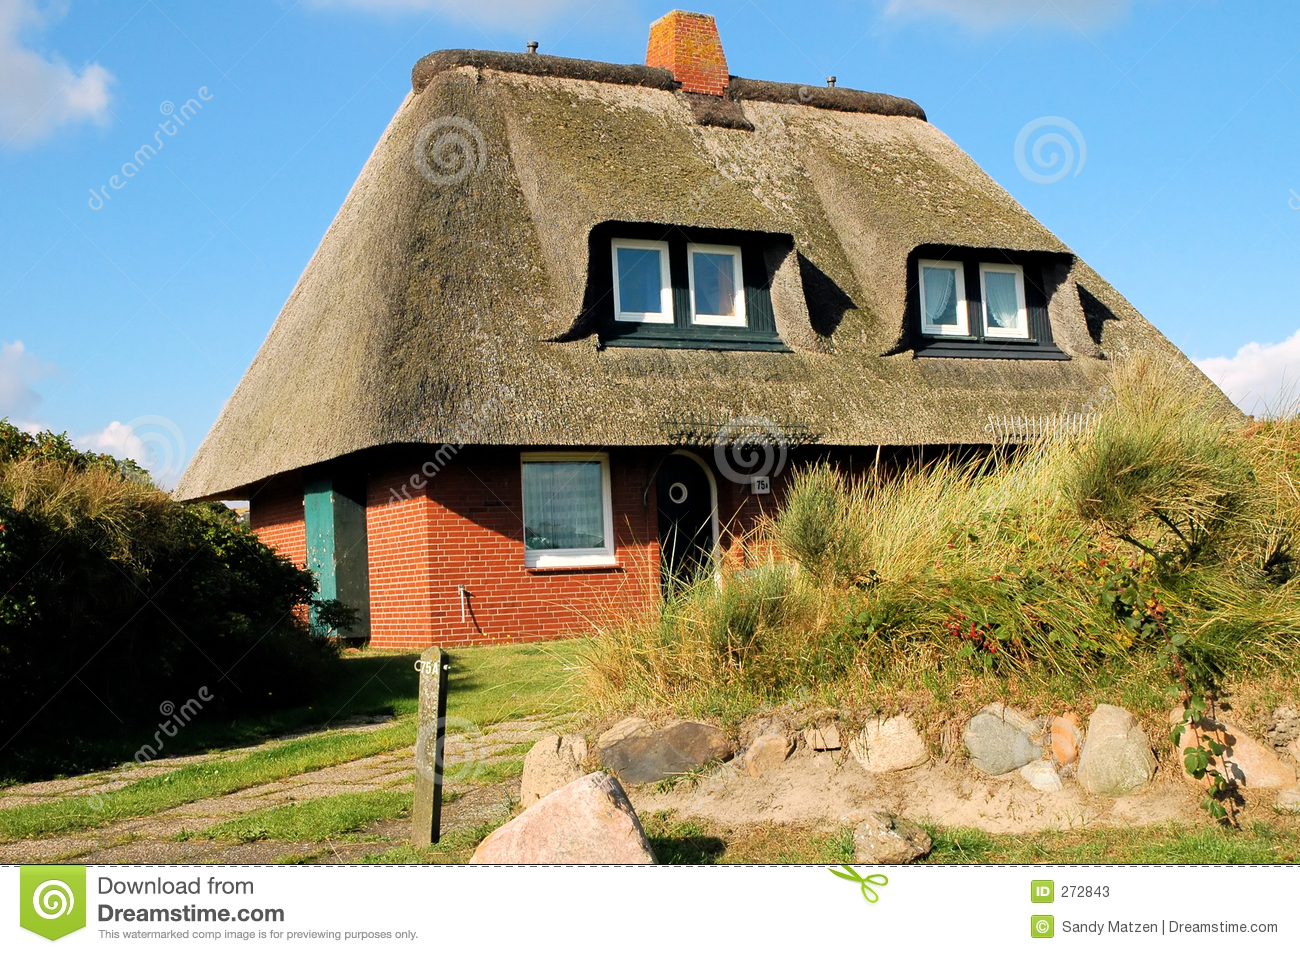 Roof thatched house2